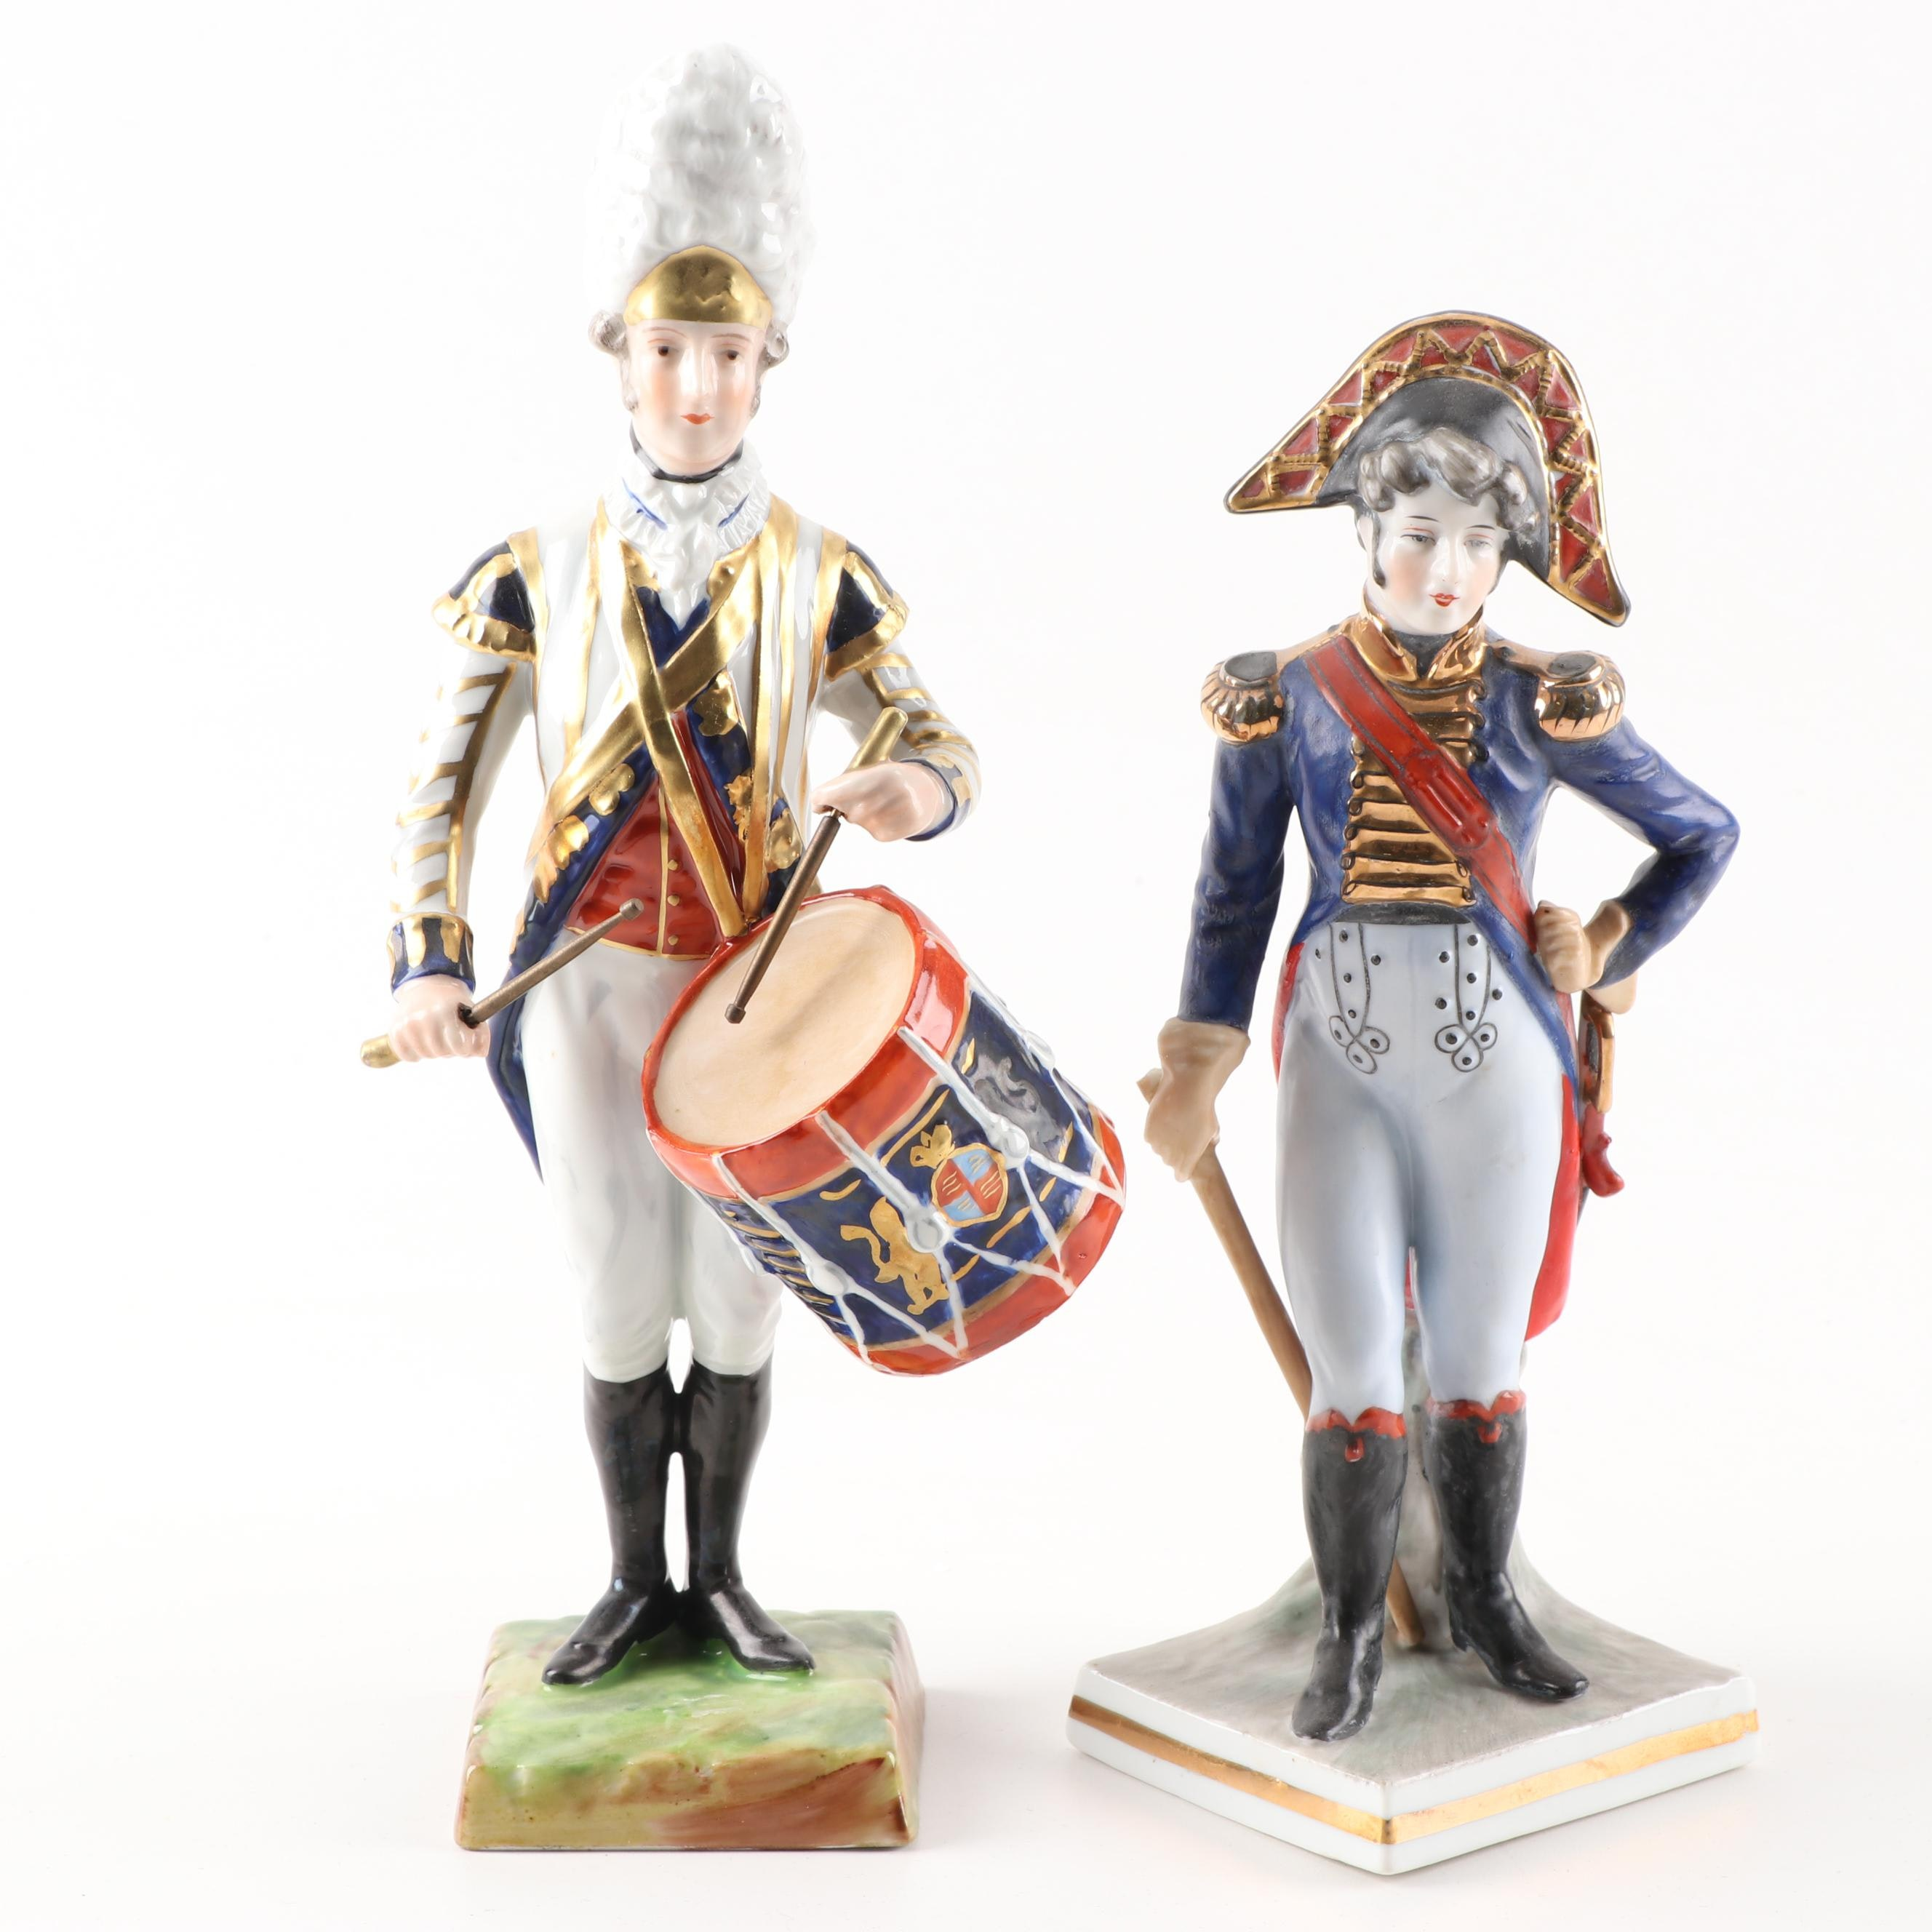 Porcelain Military Band Figurines, Early to Mid 19th Century